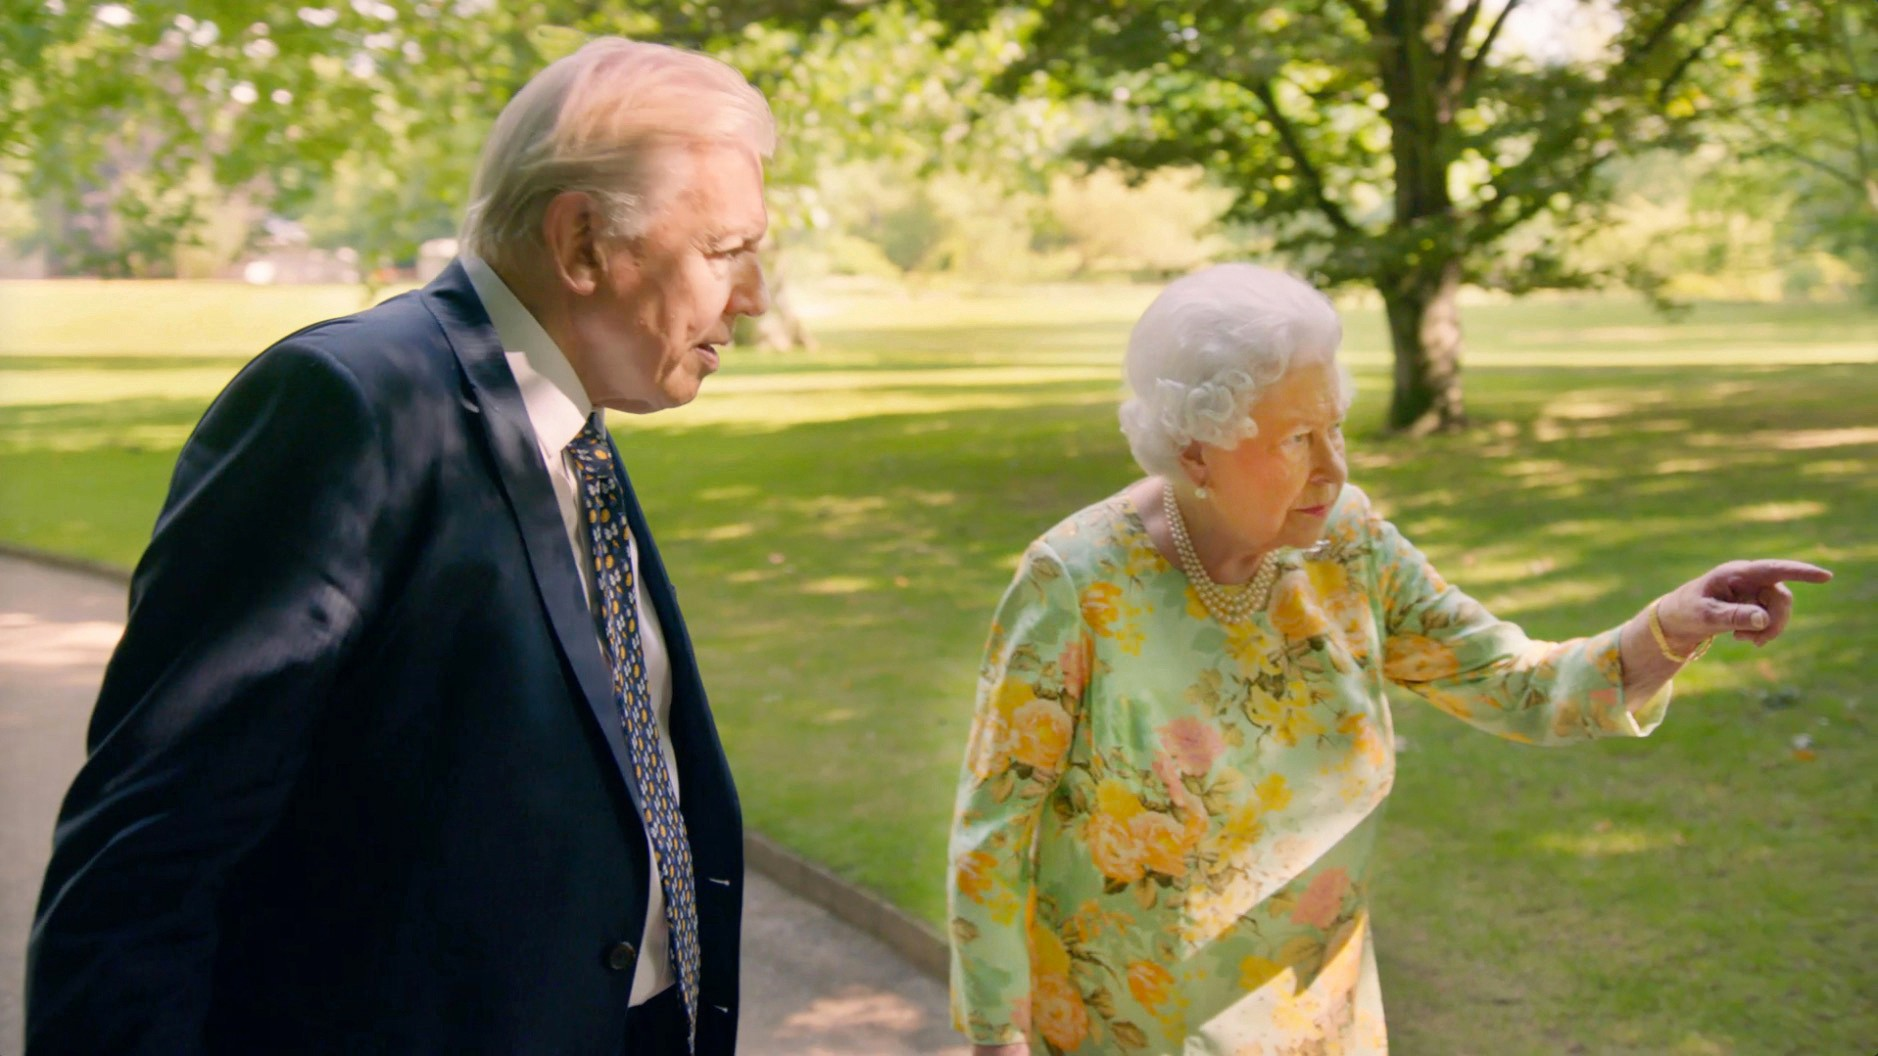 Sir David Attenborough joins Her Majesty the Queen in the gardens of Buckingham Palace (ITV, EH)